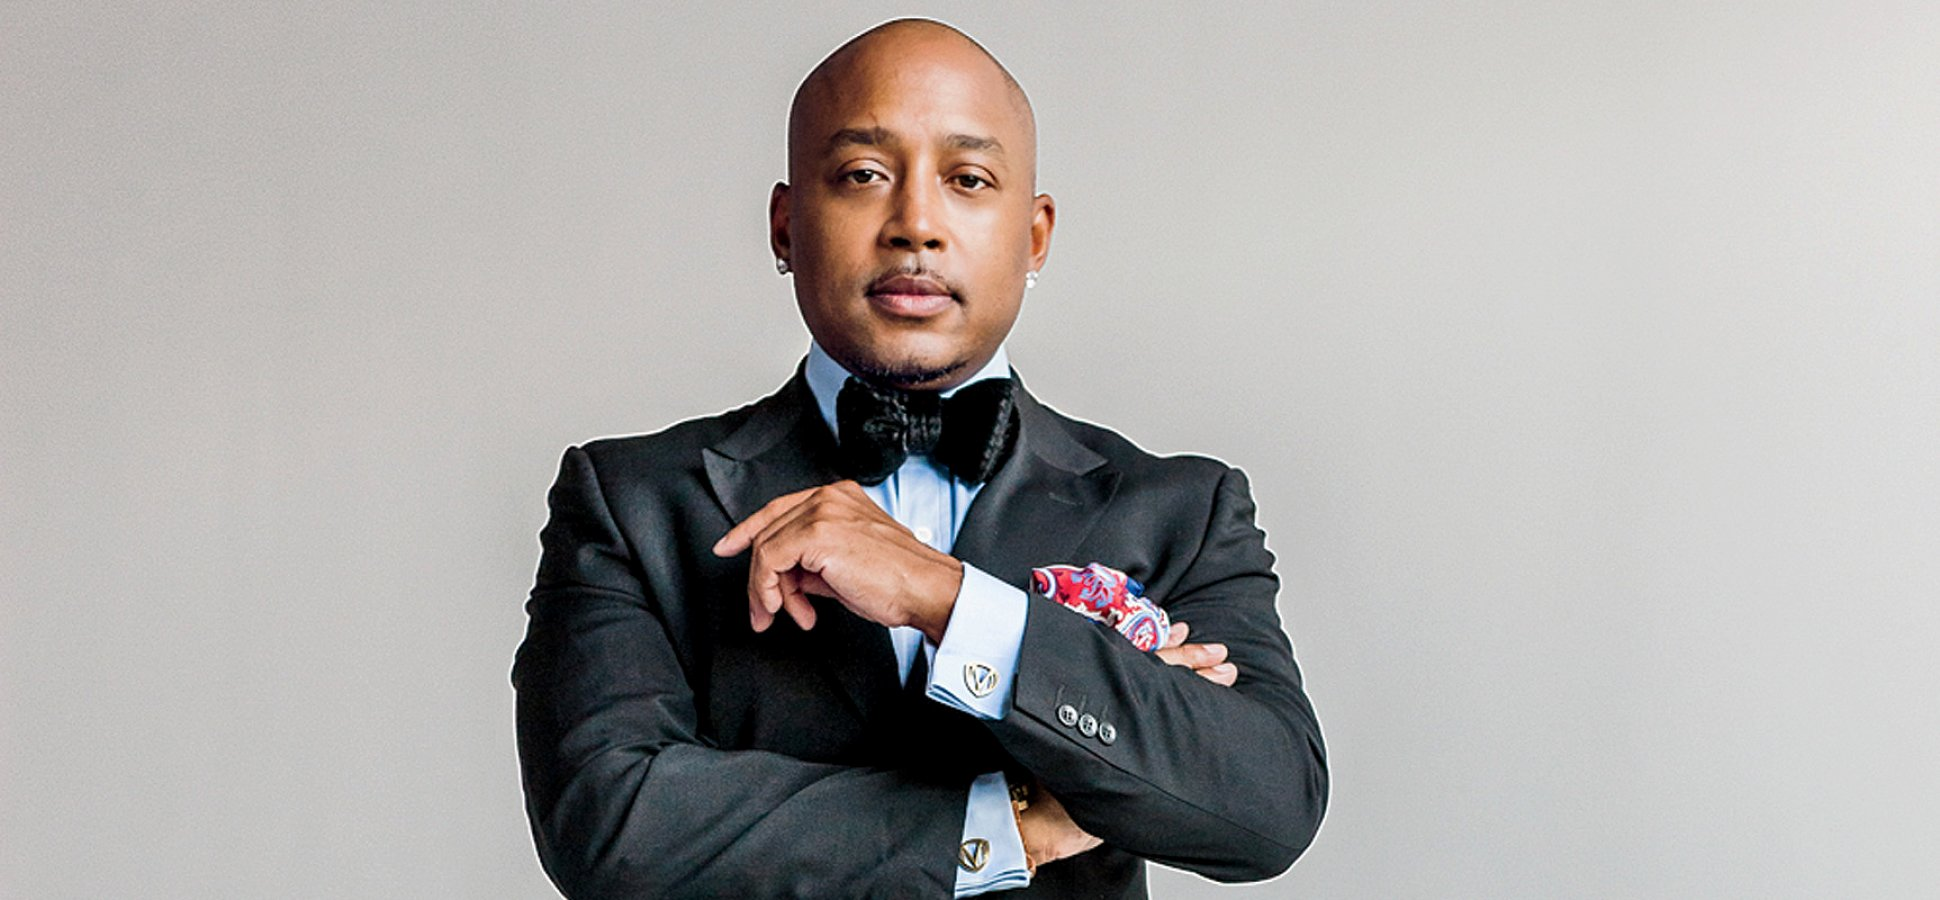 A Conversation with Daymond John